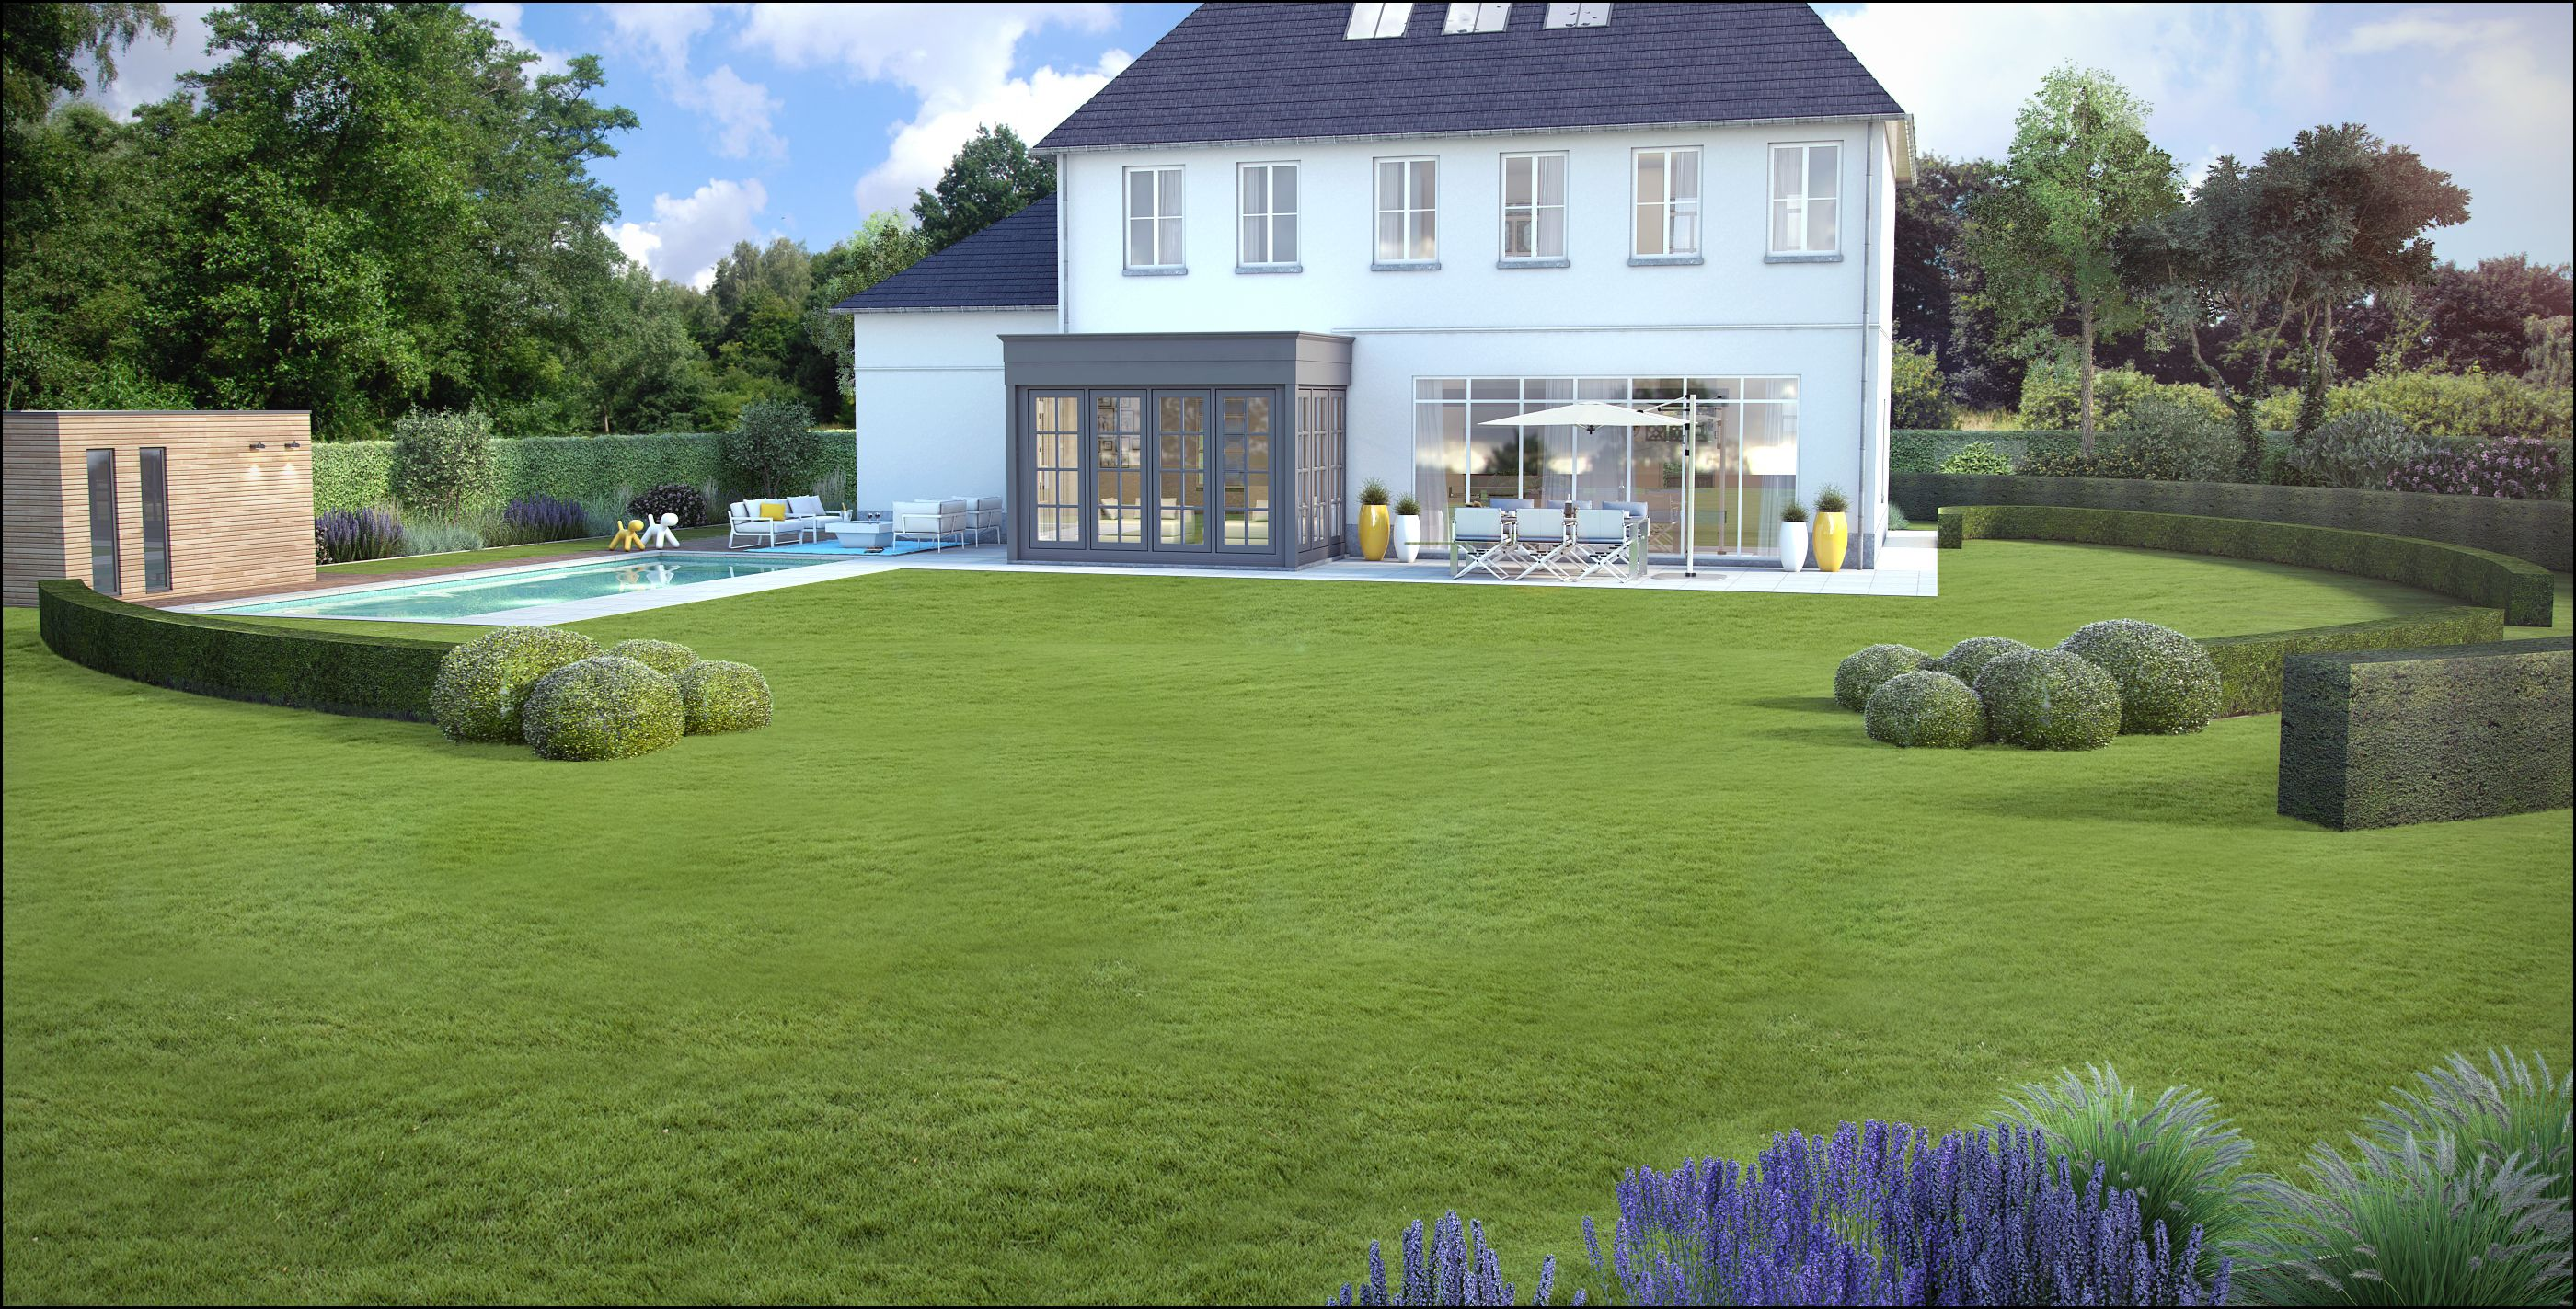 Garden landscaping tuin tuinontwerp archviz for 3d tuinarchitect